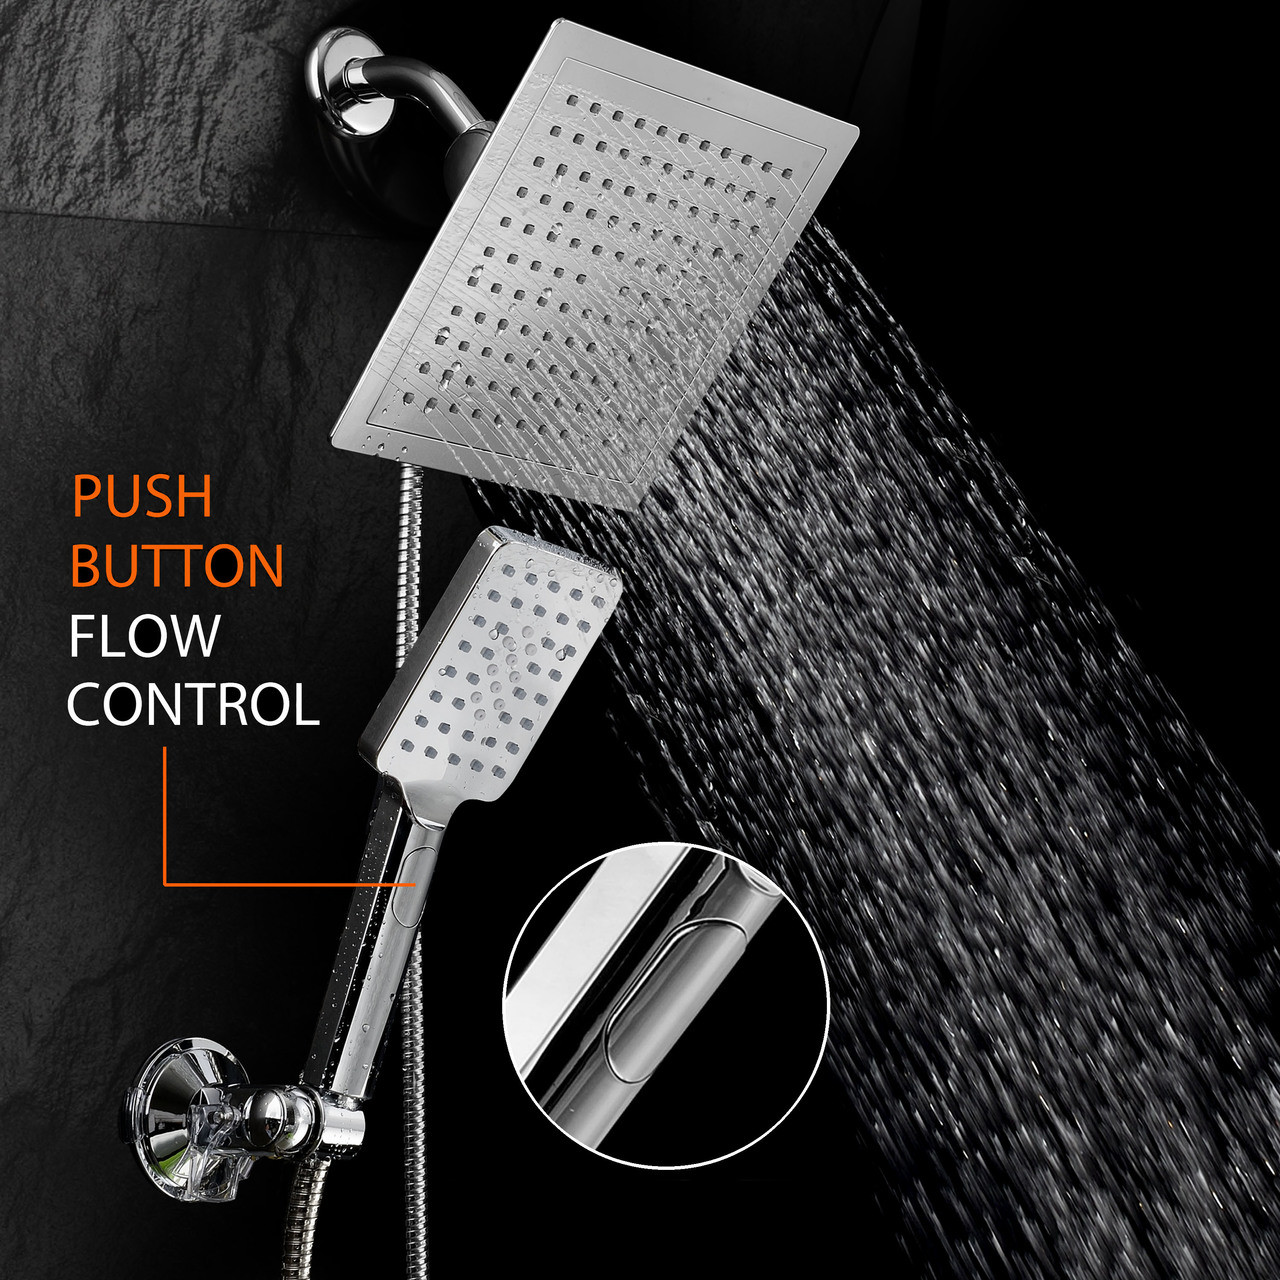 Rain Flow Shower Head.Dream Spa Ultra Luxury 9 Rainfall Shower Head Handheld Combo Convenient Push Button Flow Control Button For Easy One Handed Operation Switch Flow